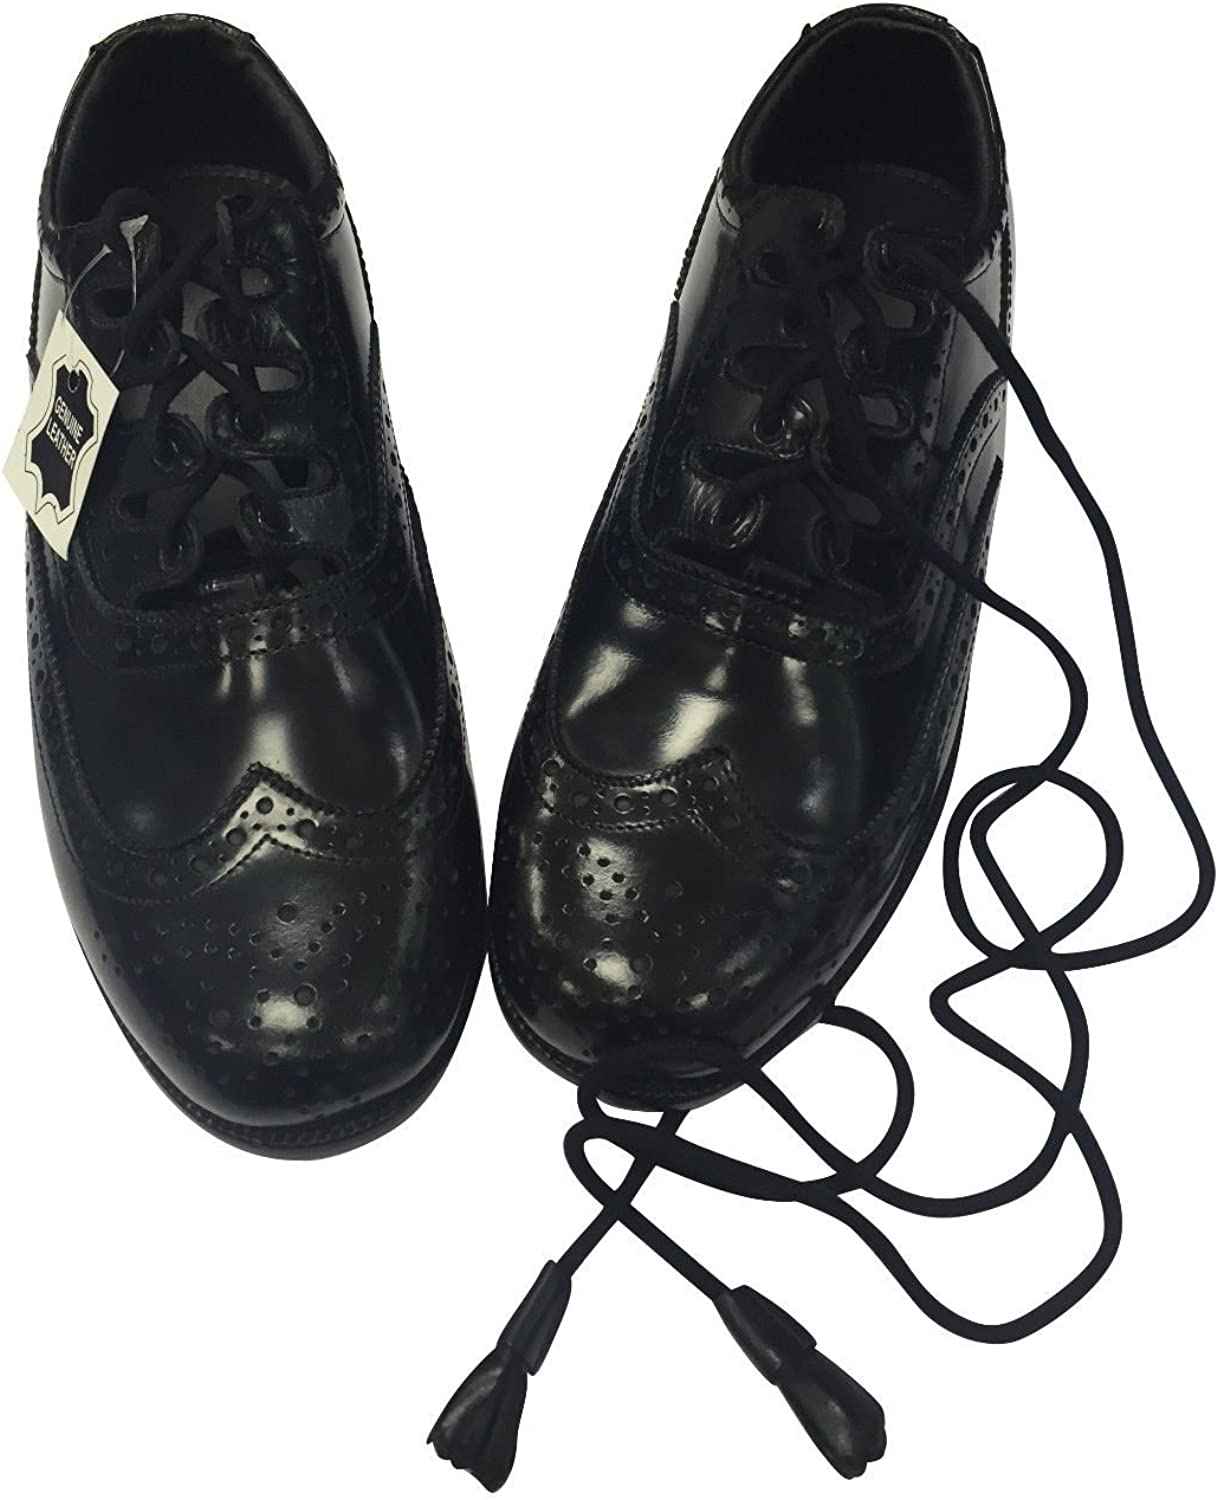 Mens Scottish Highland Black Leather Ghillie Brogues Various Sizes Available